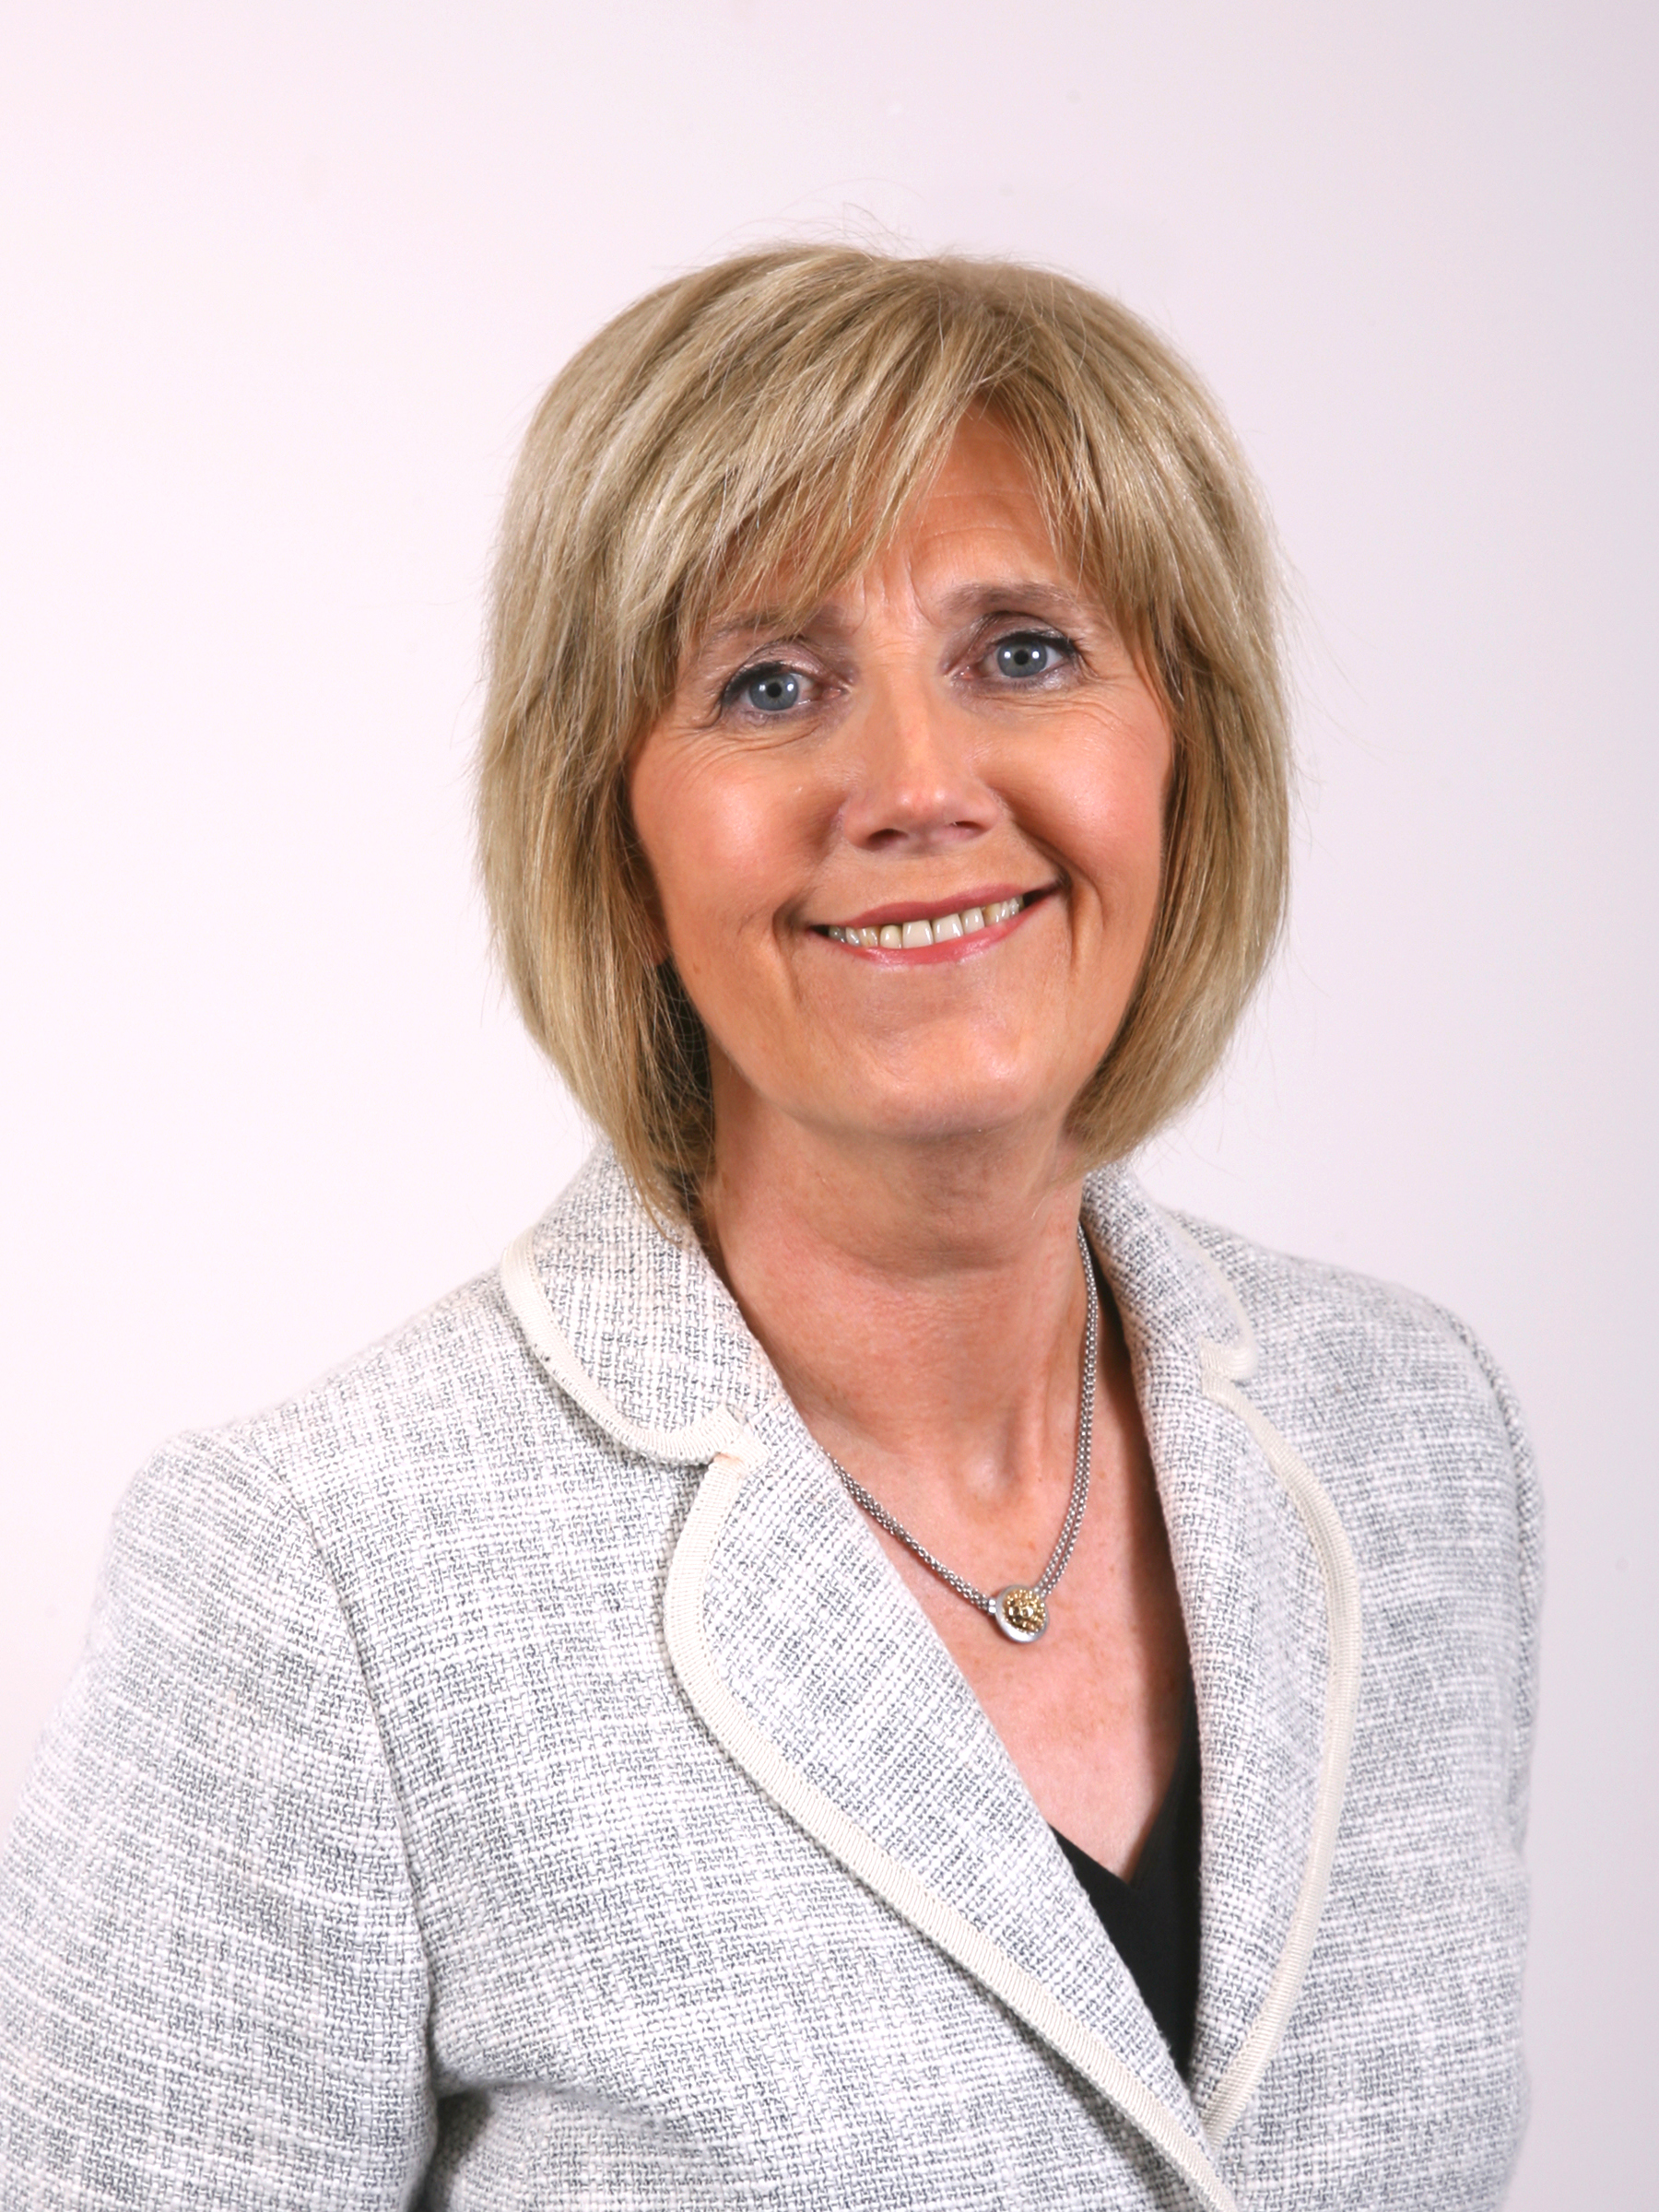 Lorraine Toolan Legal Adviser and Head of Employment Training Services